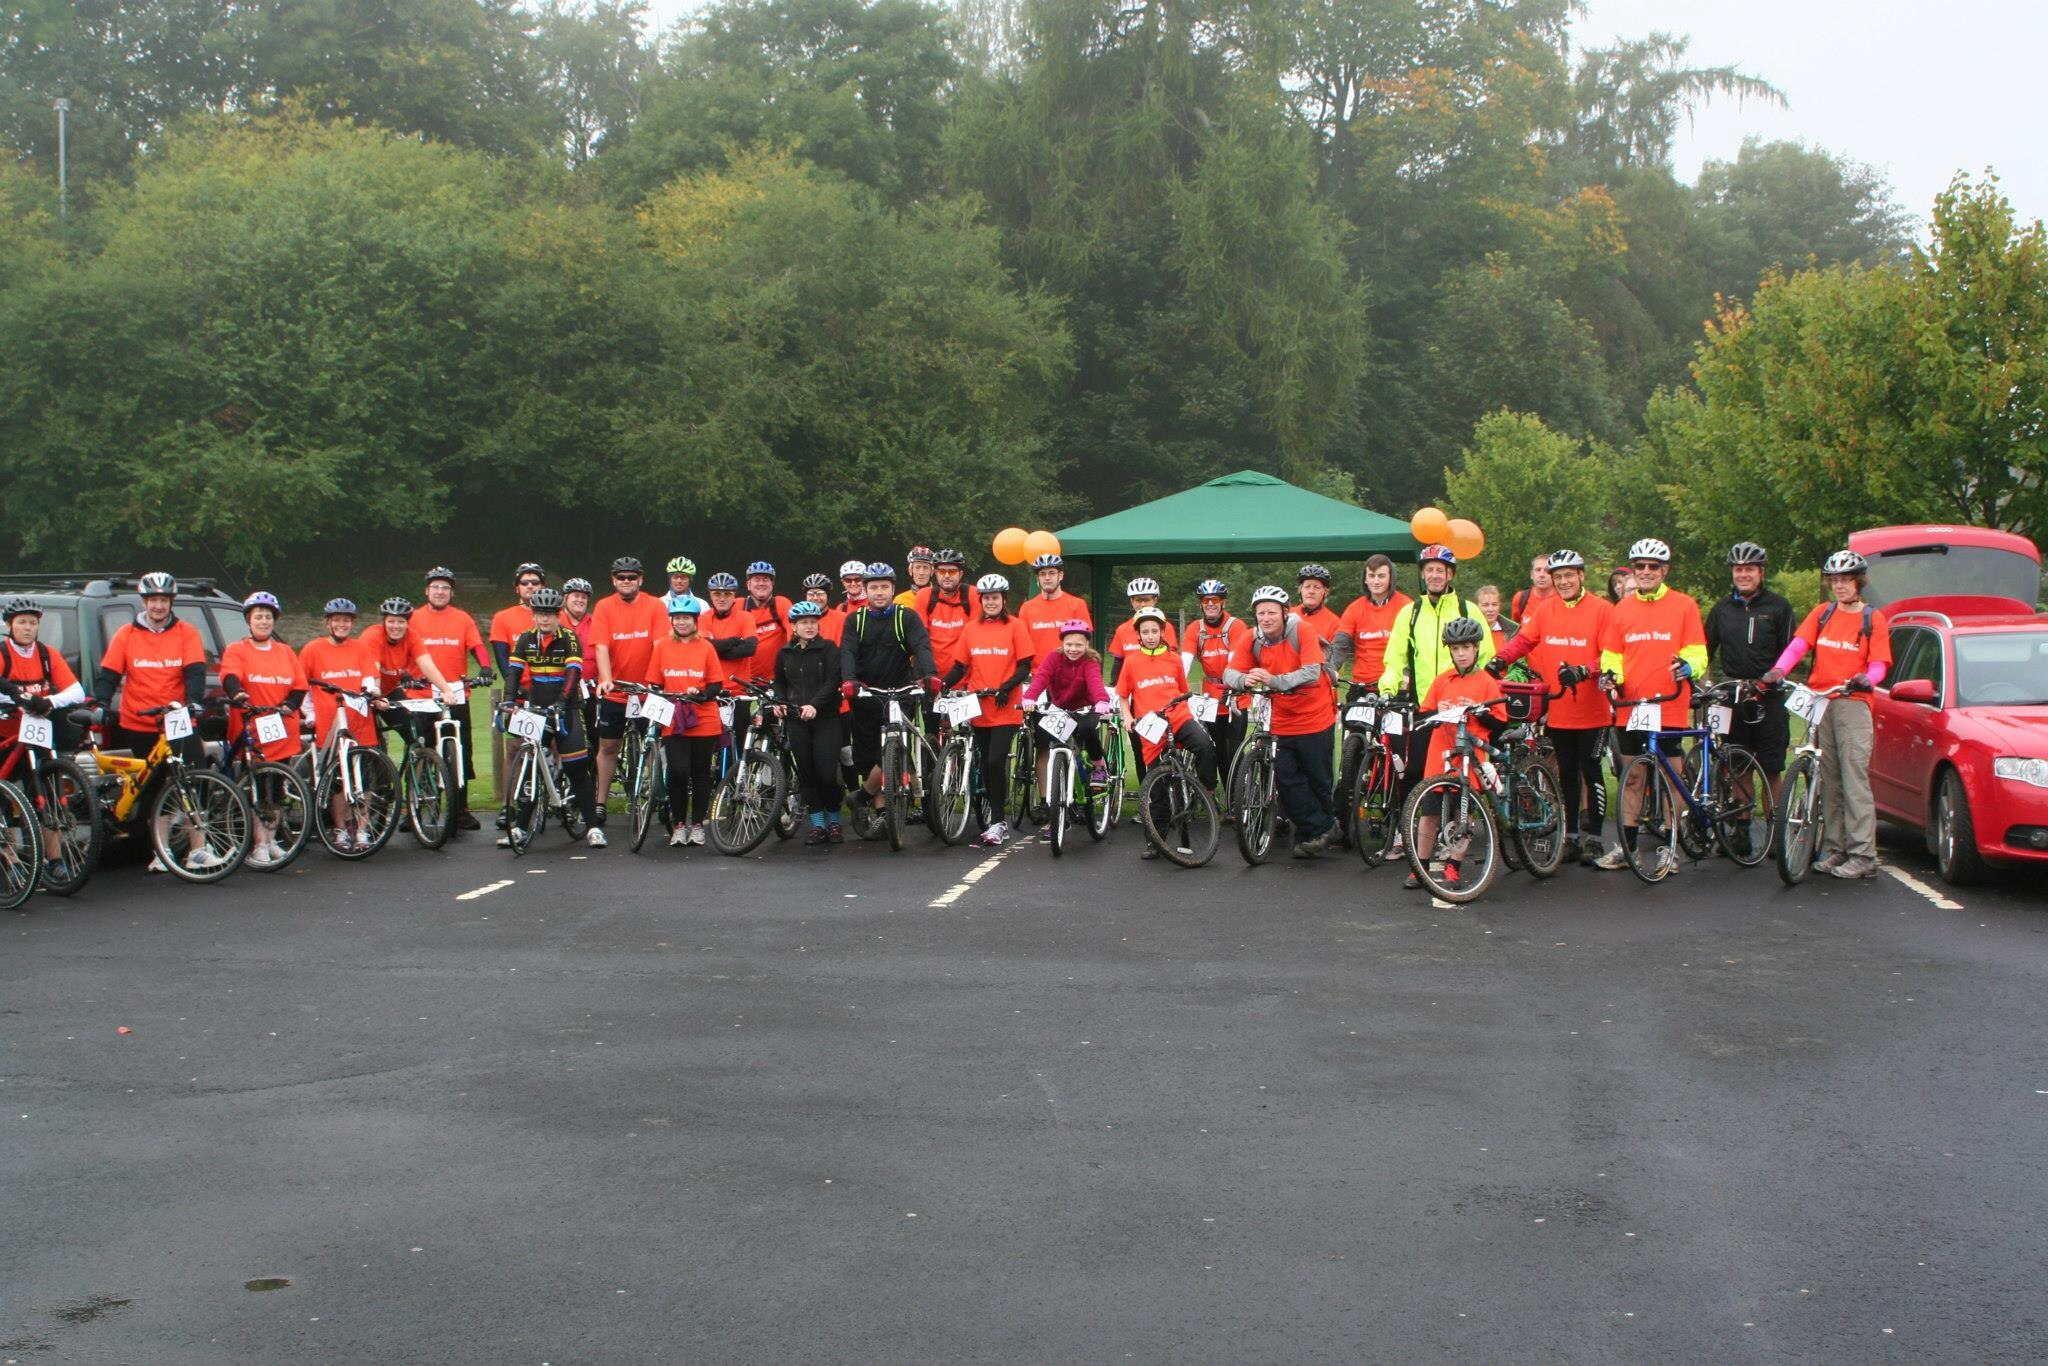 Big cycle group